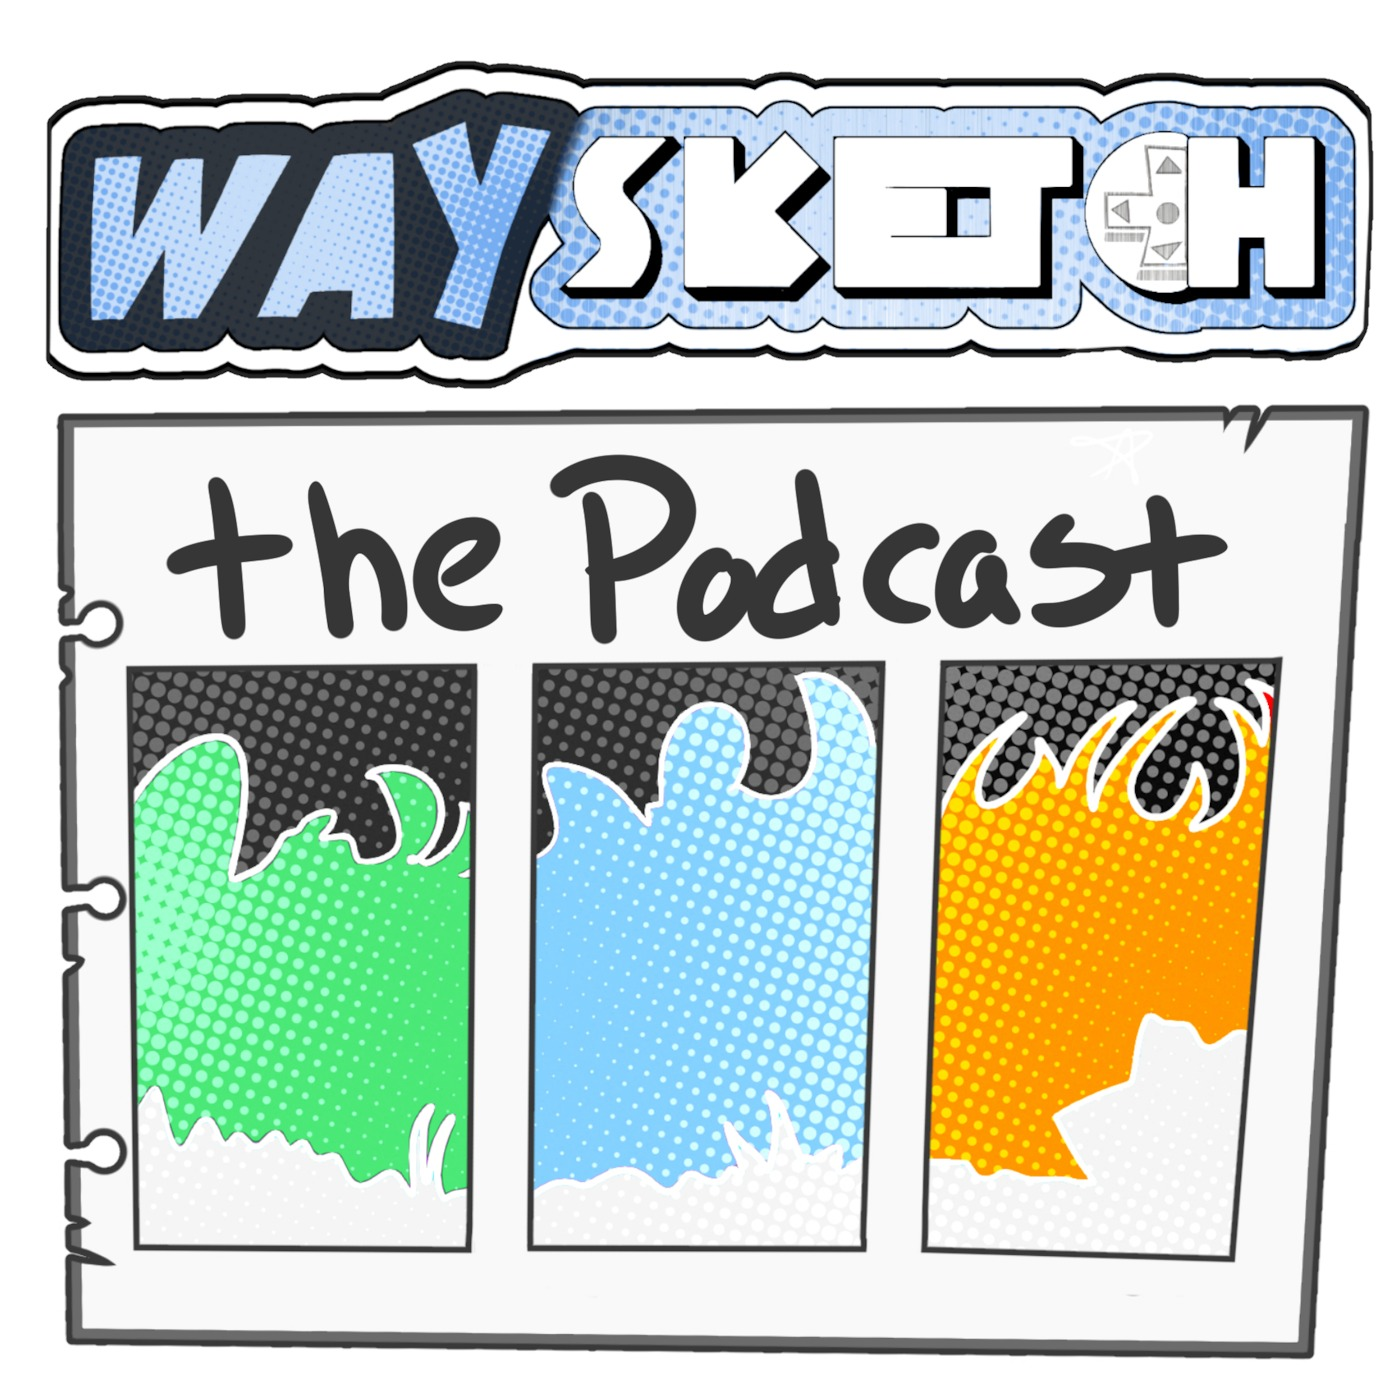 waysketch the podcast